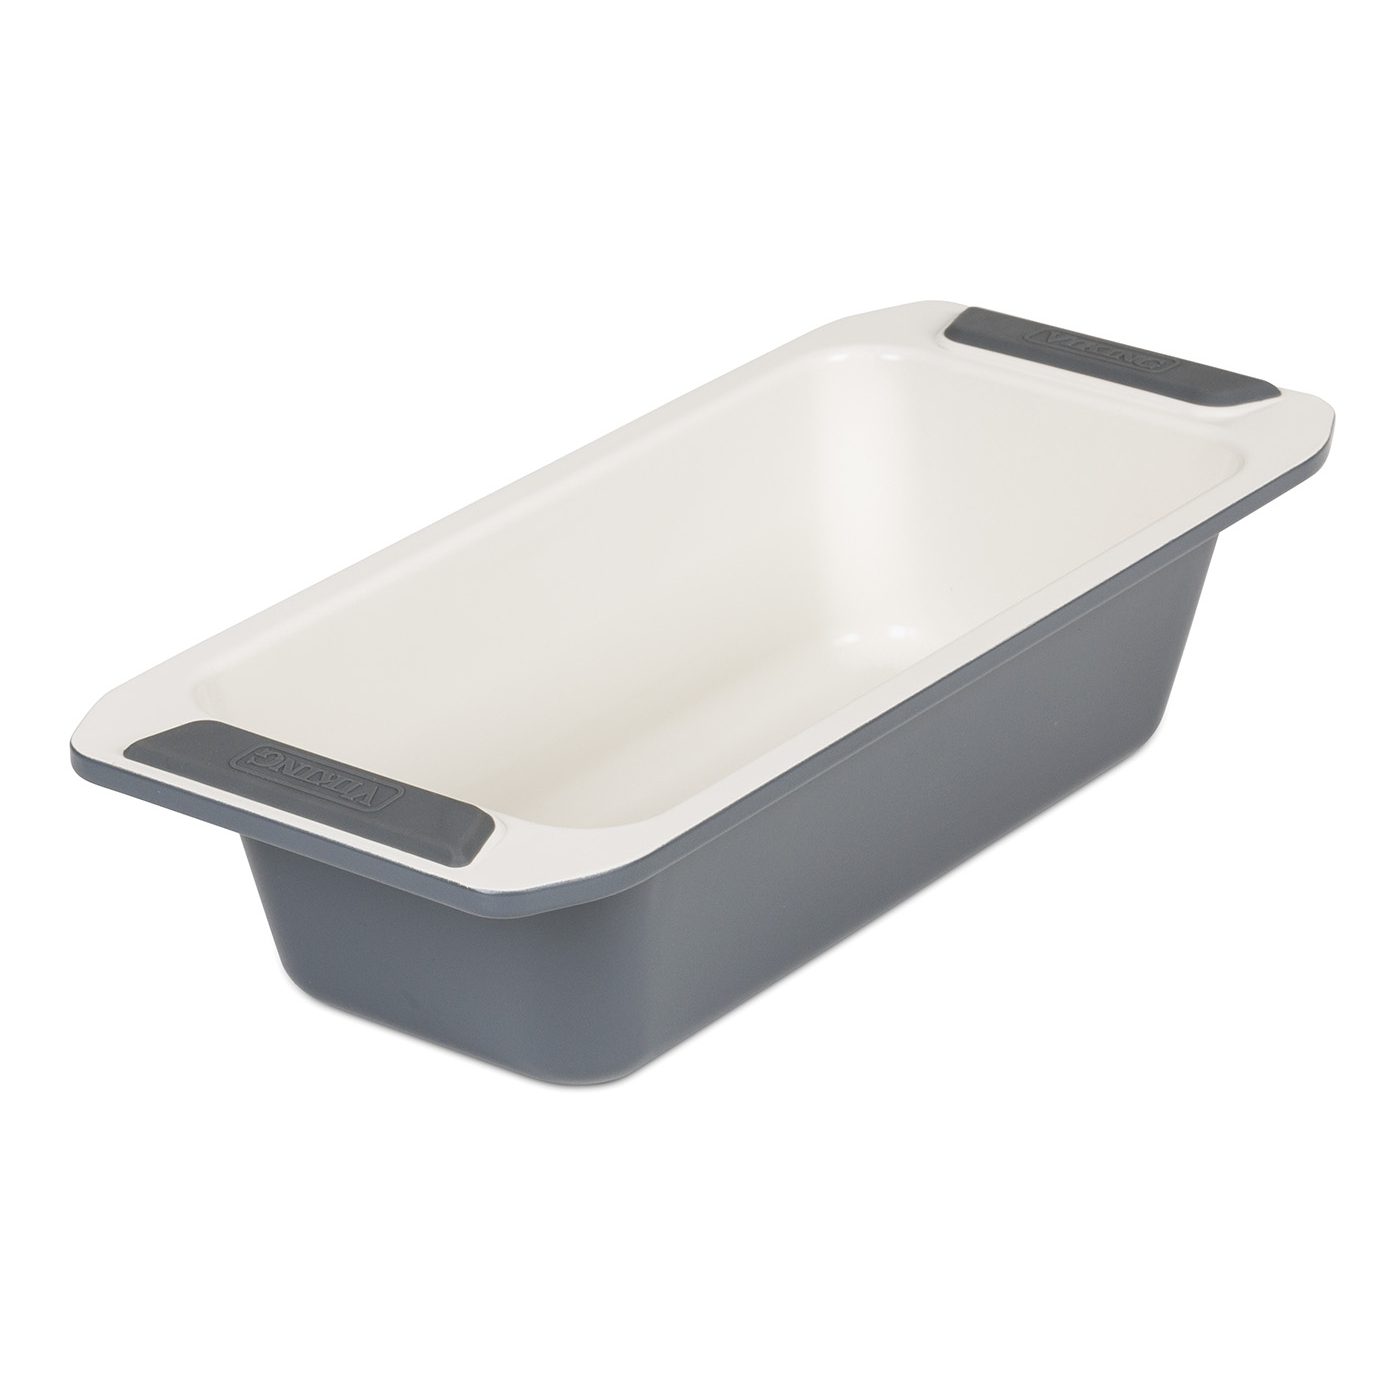 Viking Cream and Gray Coated Nonstick Ceramic 10 Inch Loaf Pan